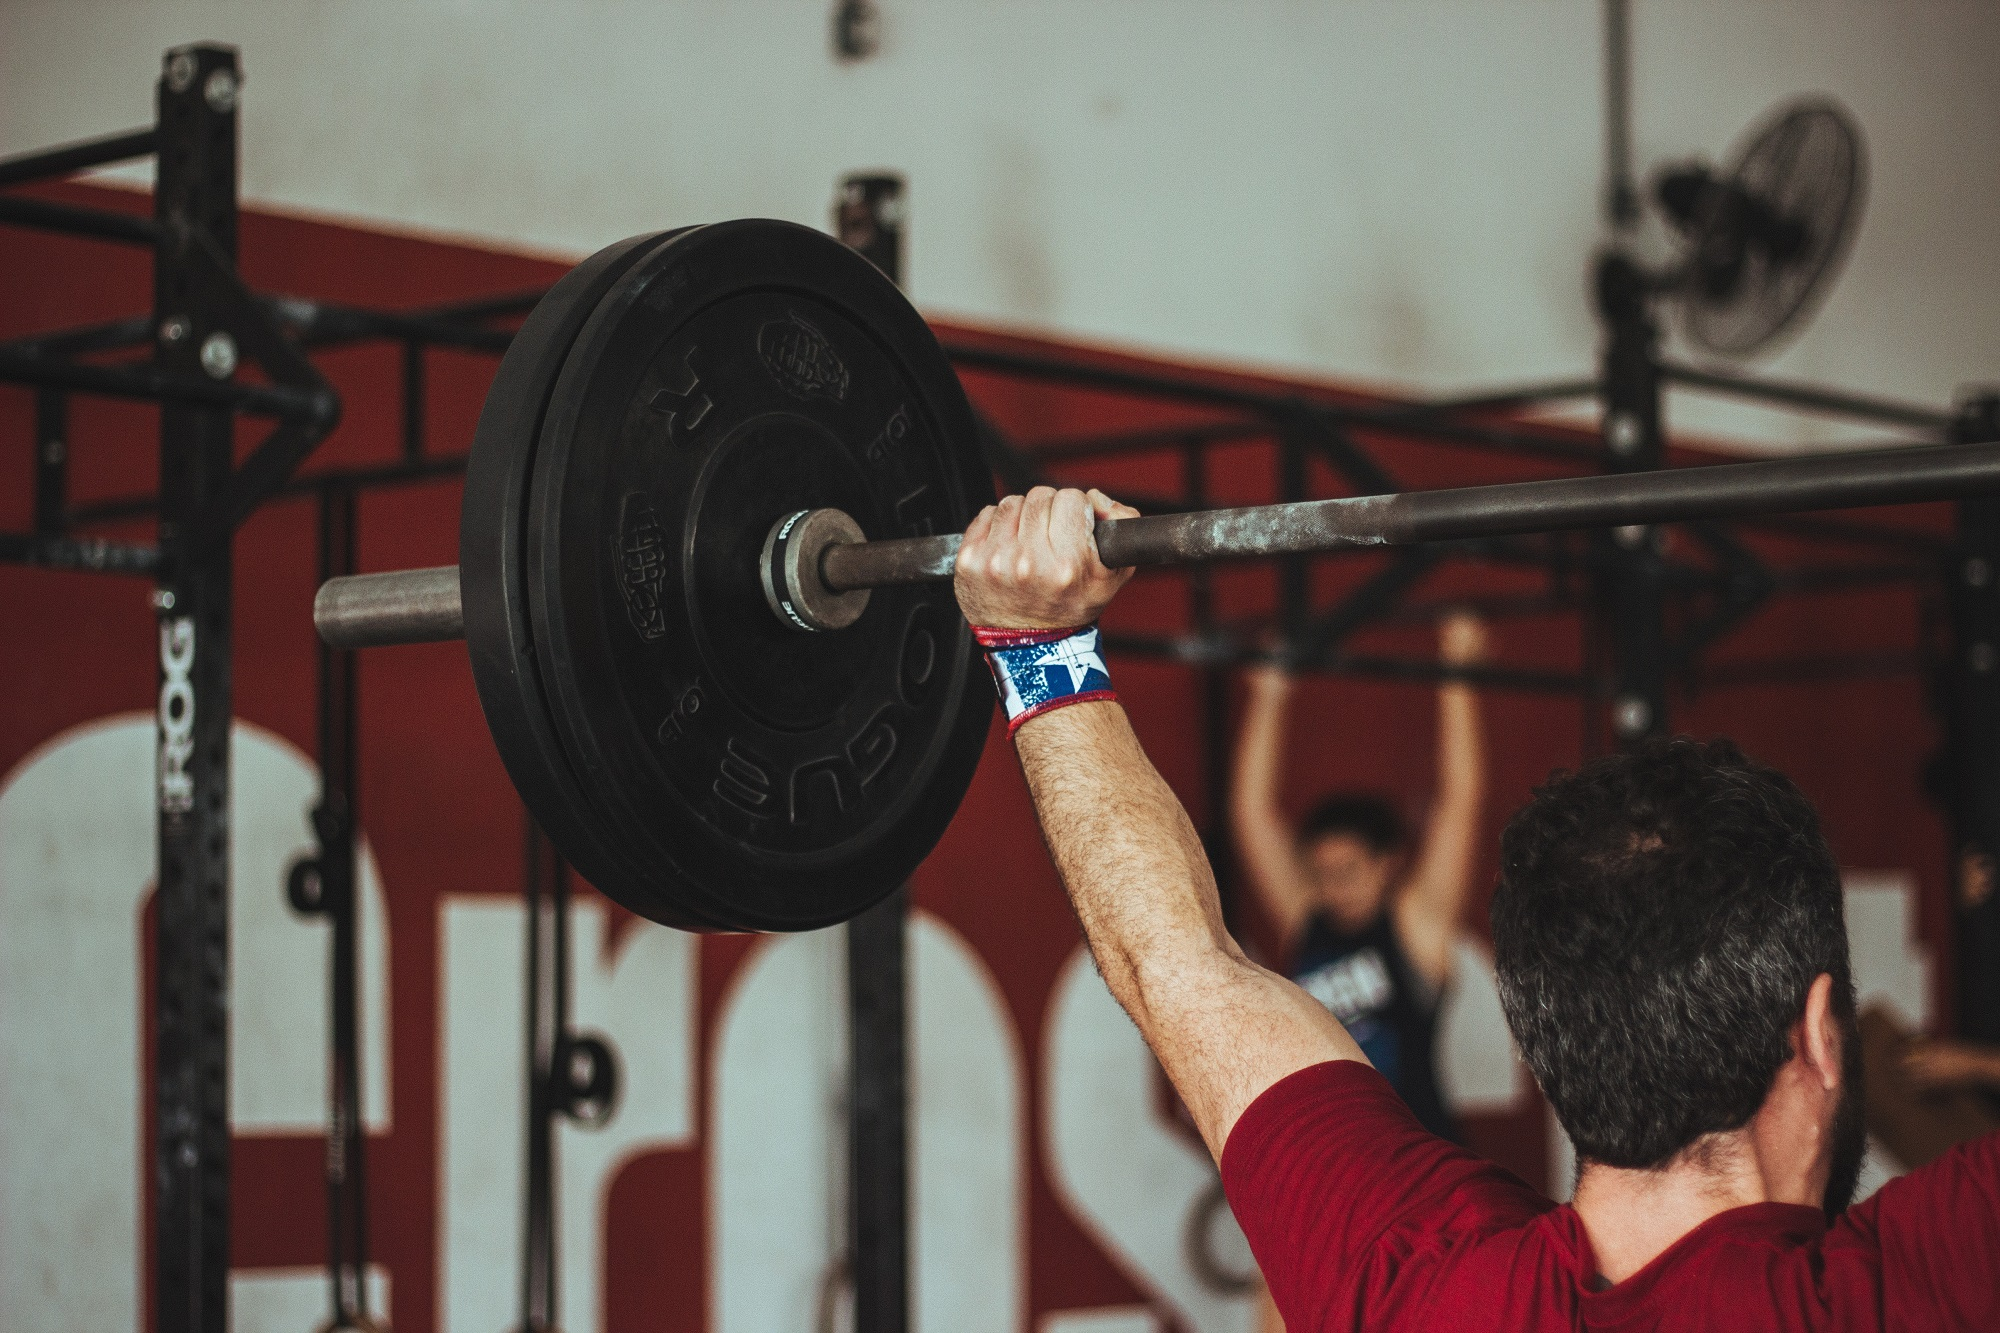 Most people know little if nothing about muscle imbalance. It's one of the biggest culprits of pain and injury, but it's completely fixable.